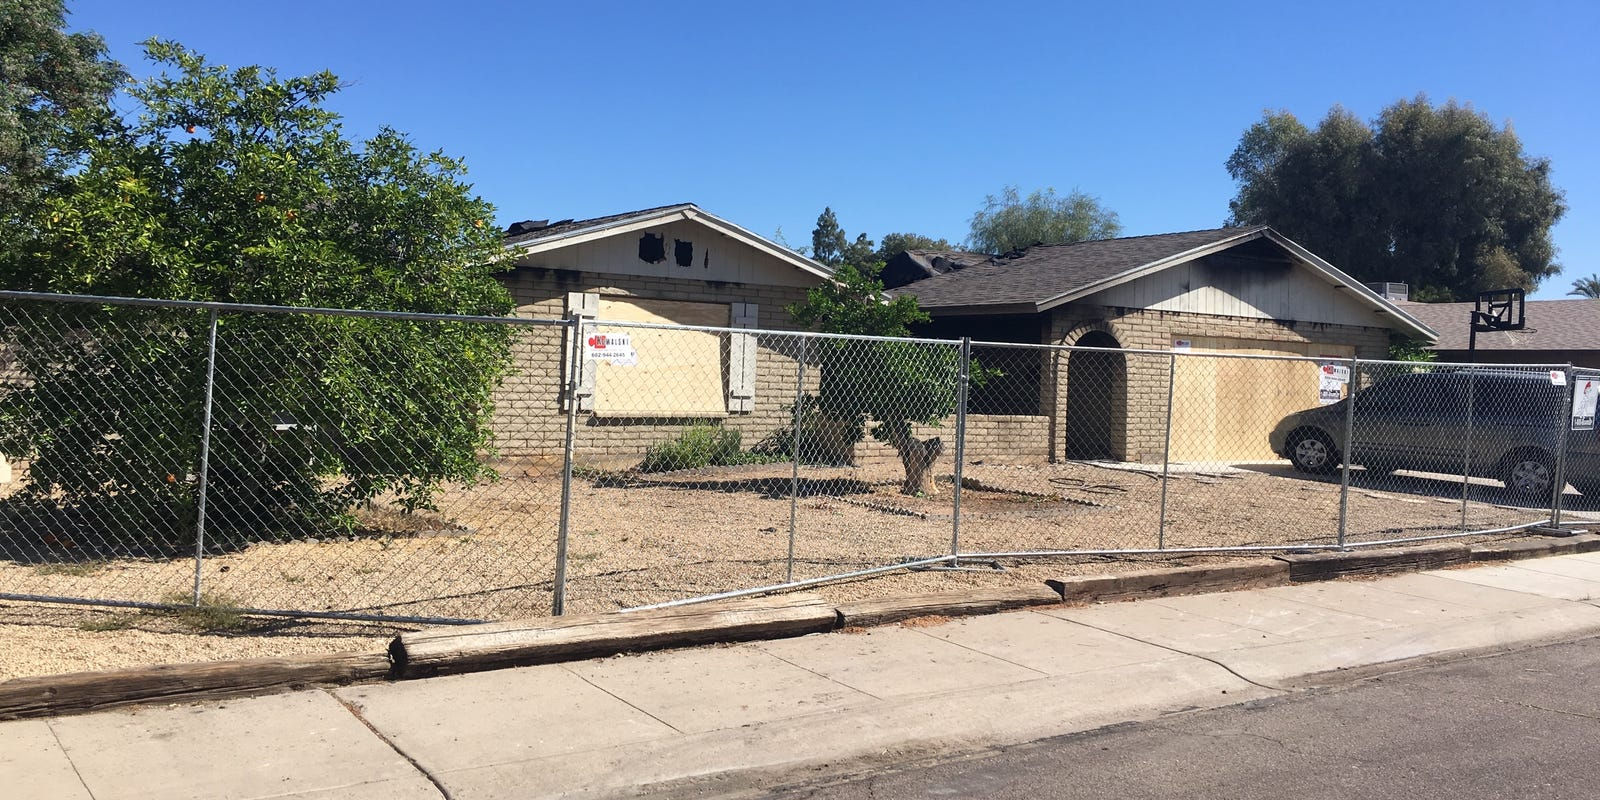 Children's former principal fondly describes family that perished in Glendale house fire